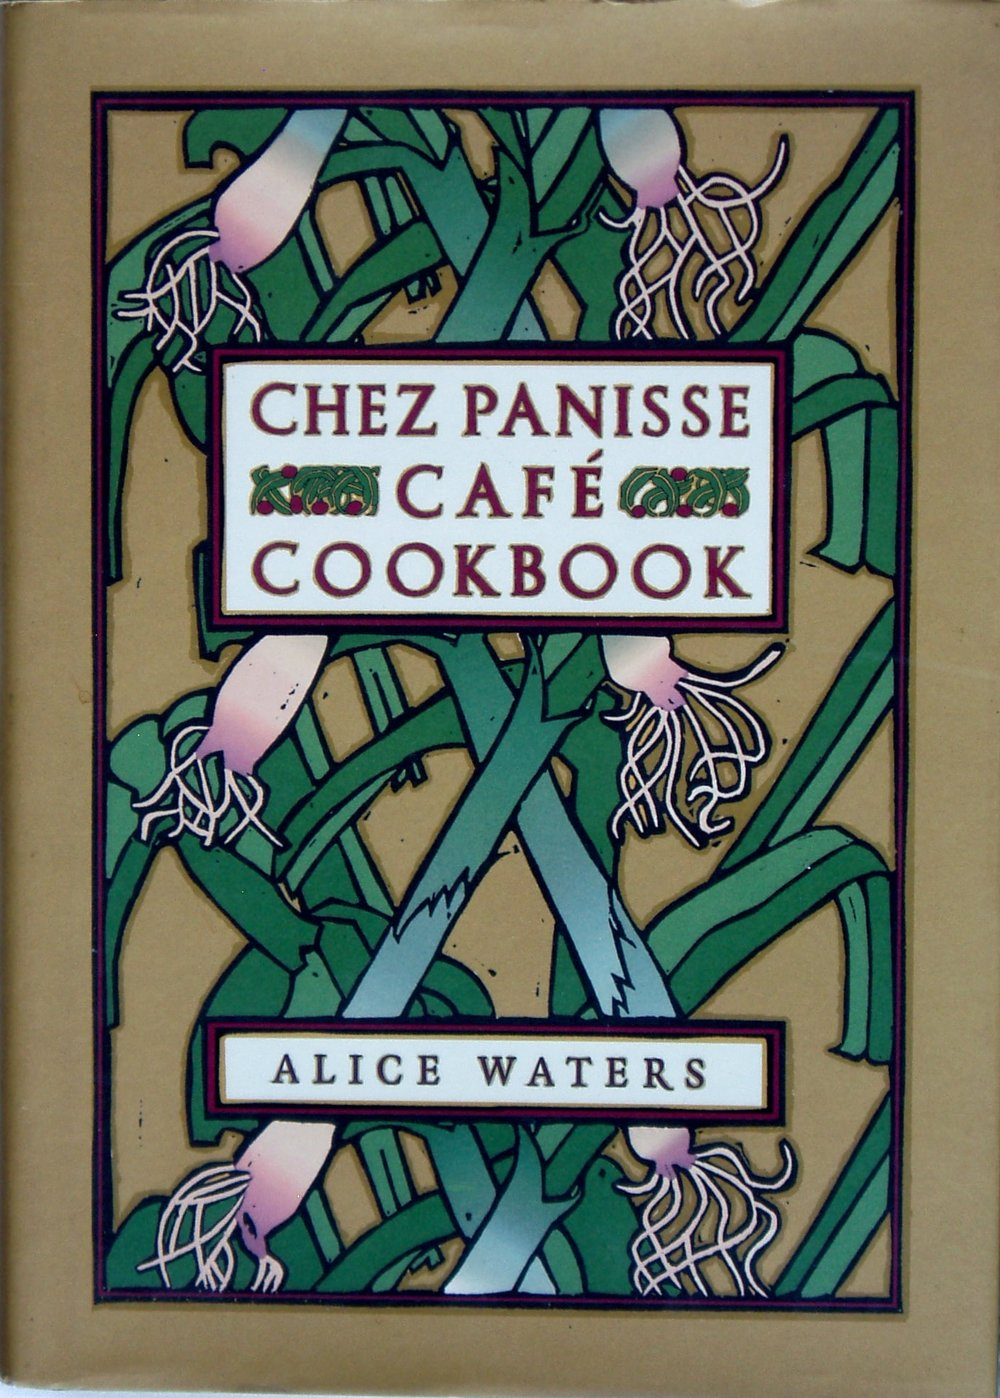 'Chez Panisse Café Cookbook' $20